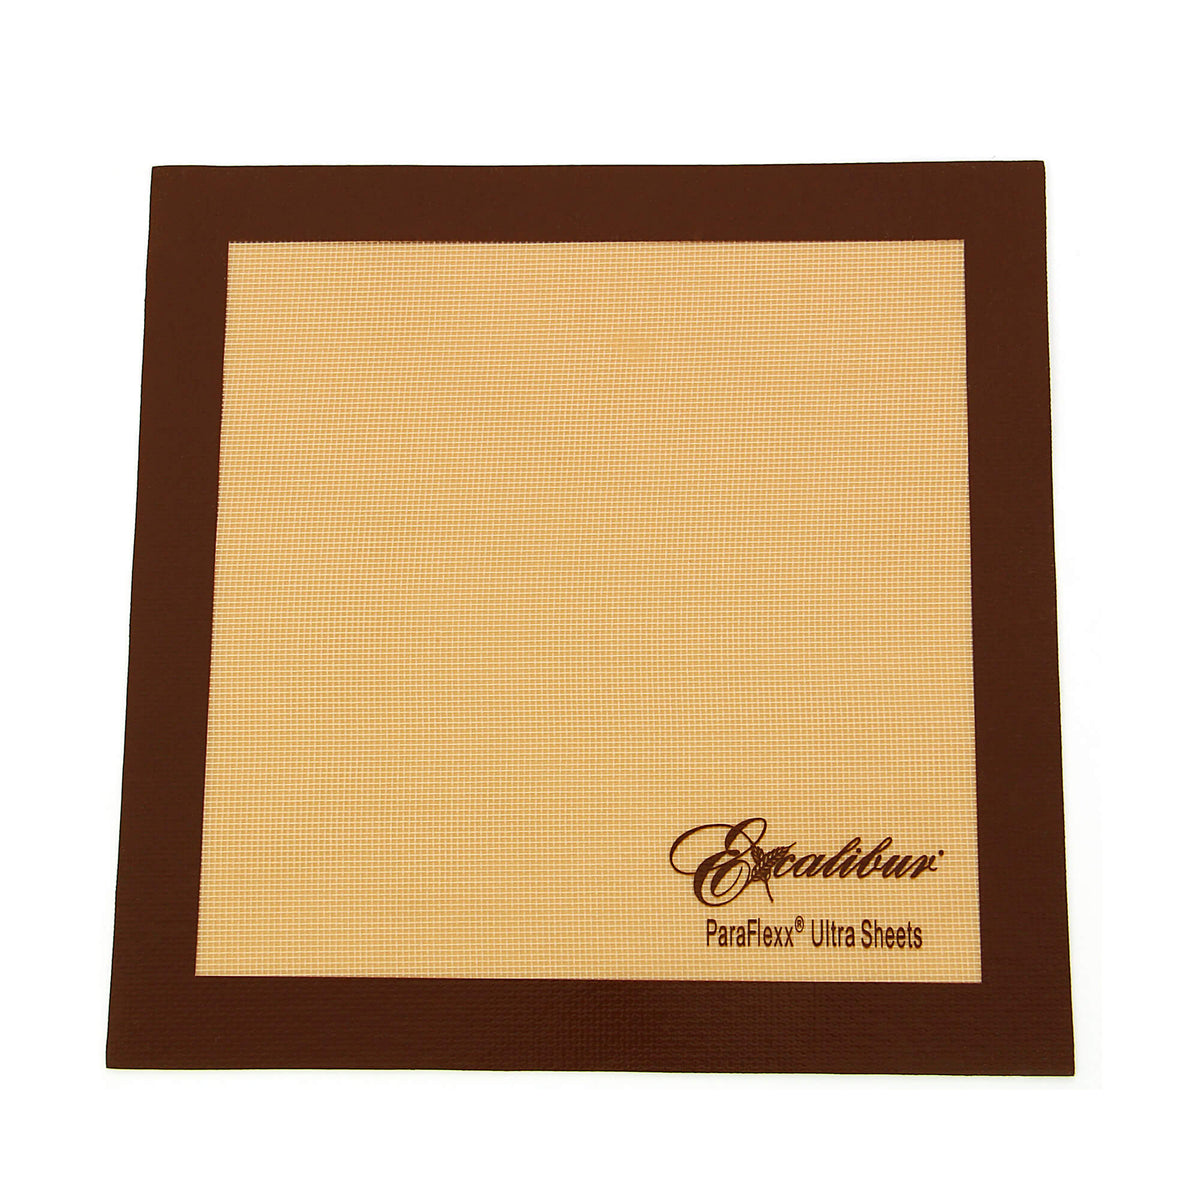 Excalibur Paraflexx Ultra silicone dehydrator drying sheet.